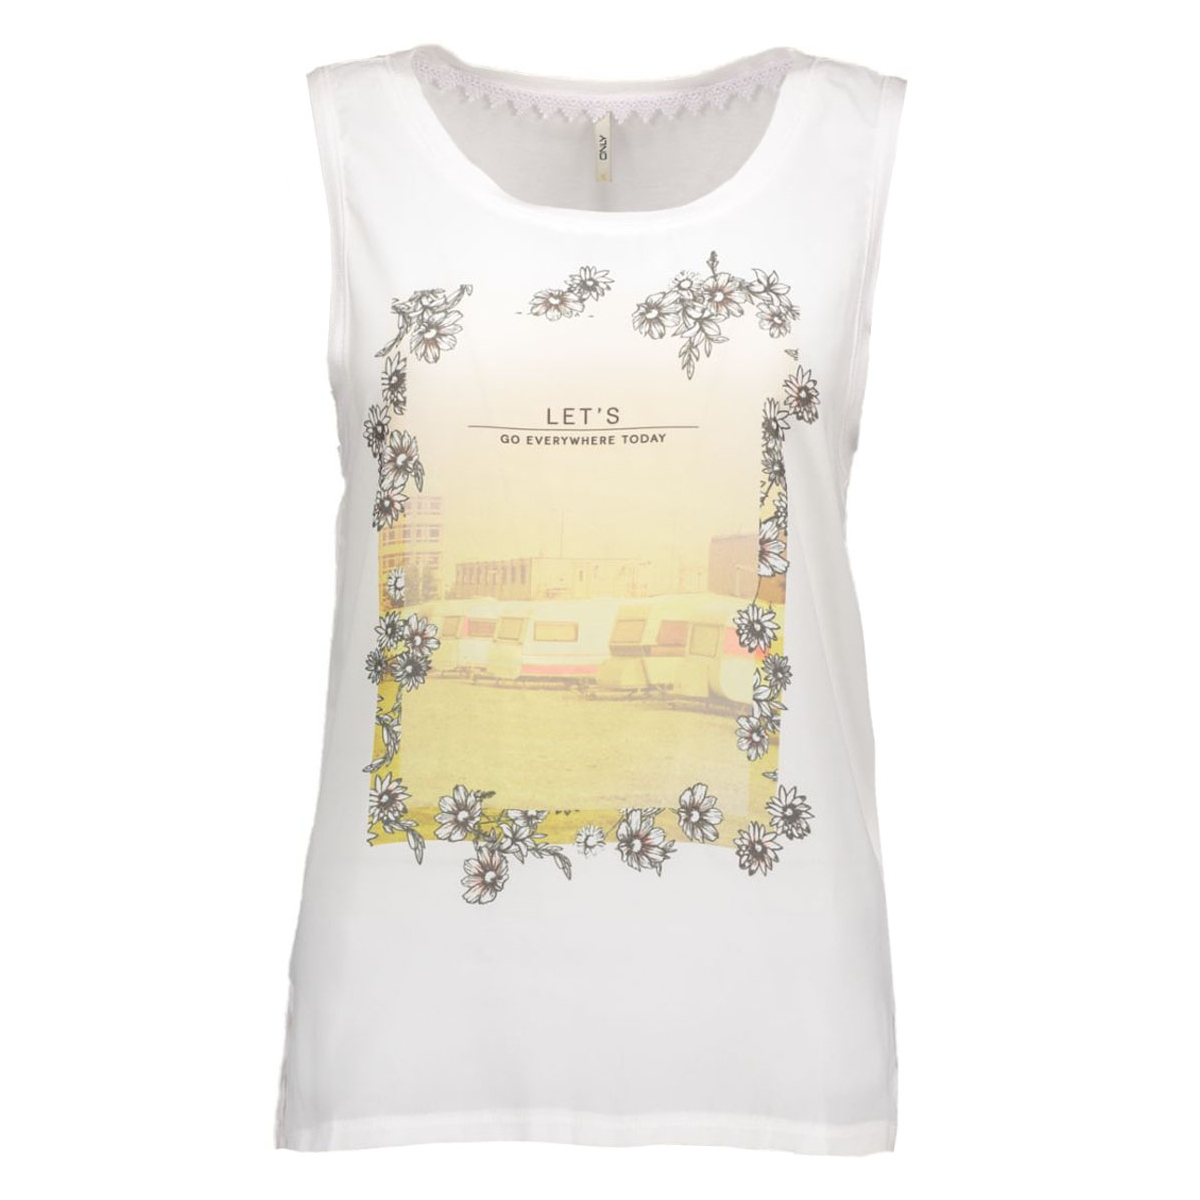 onlcrea s/l let/sun top 15117636 only top bright white